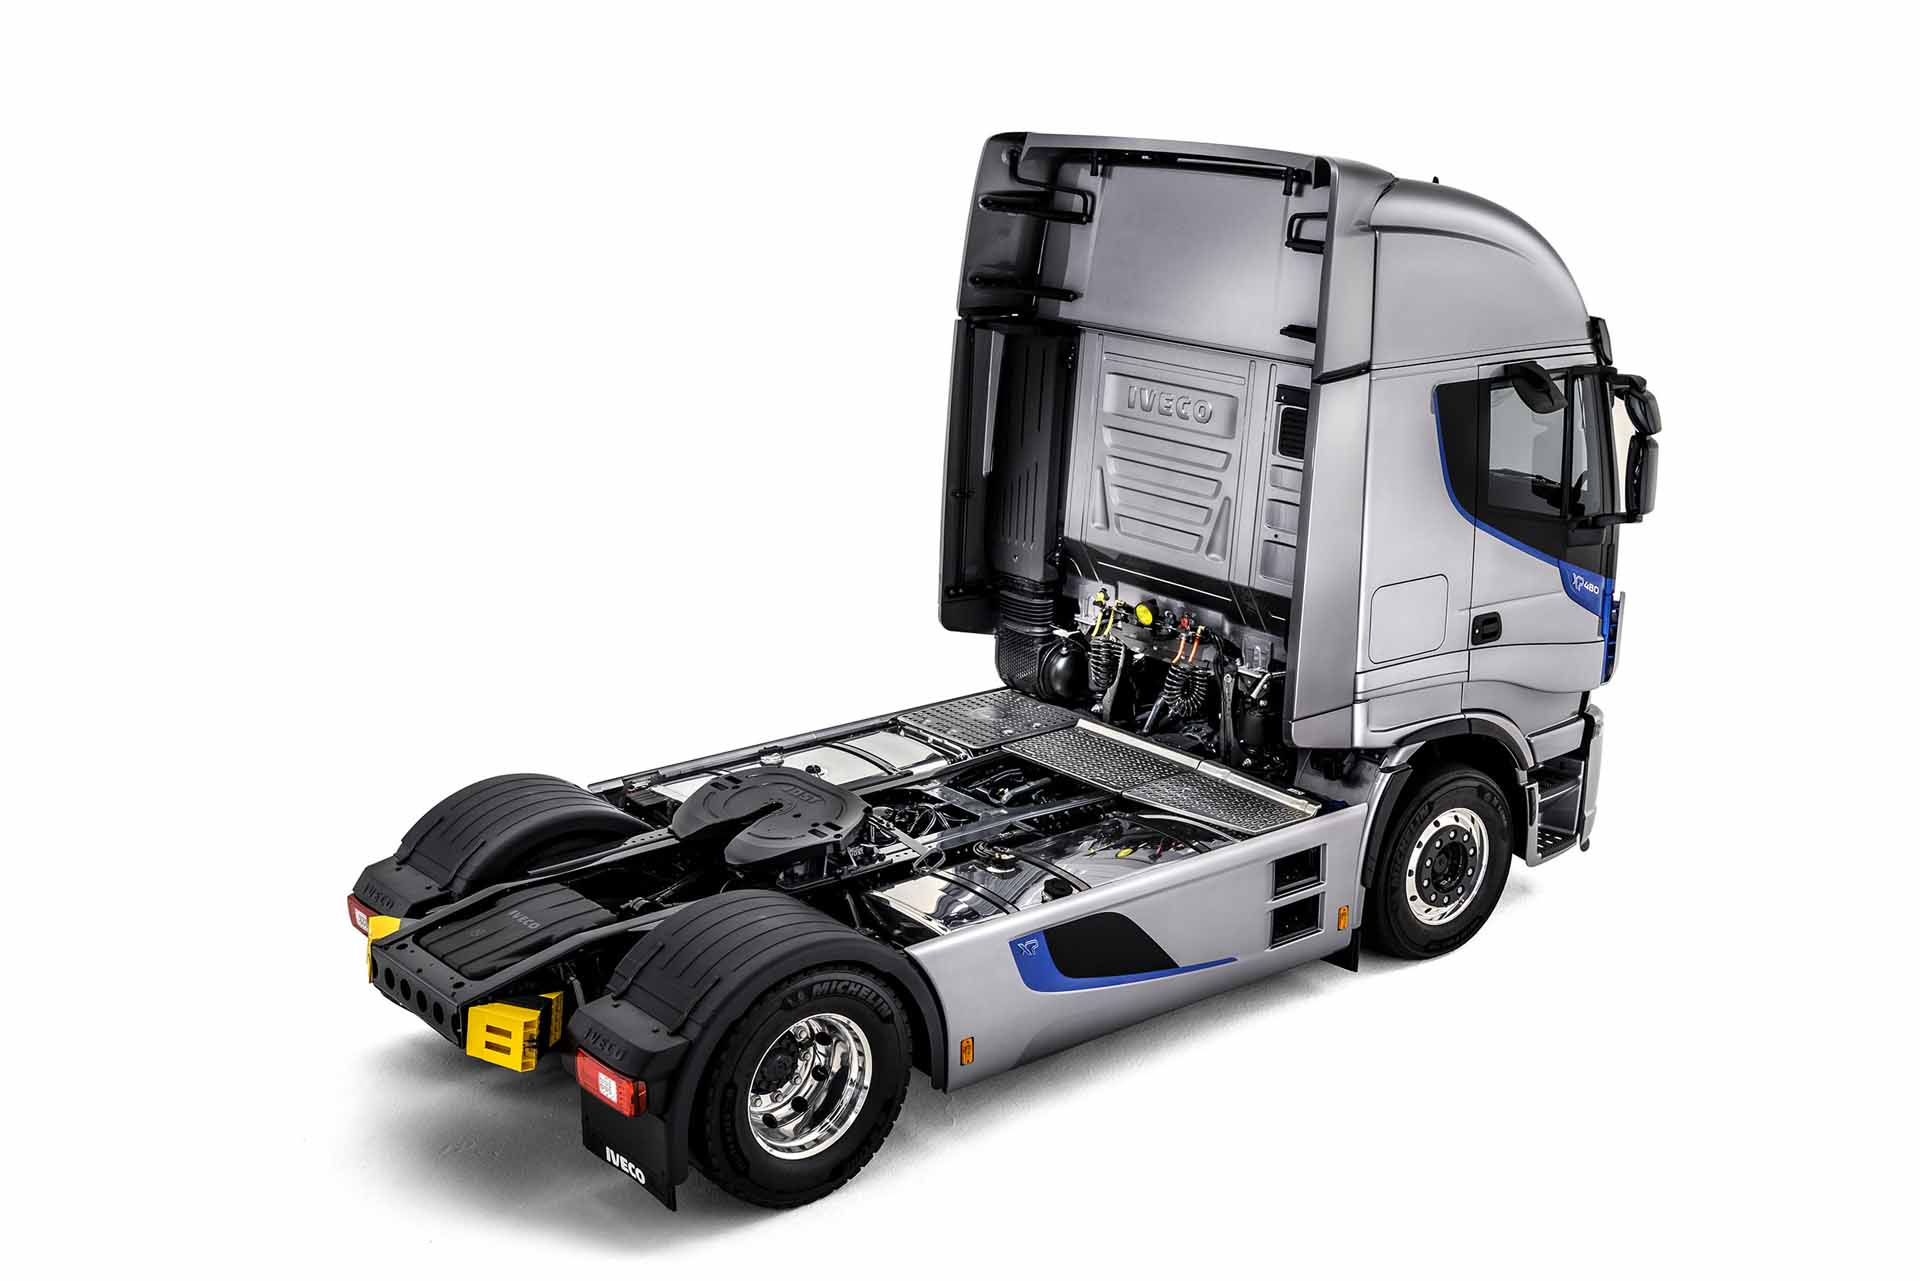 iveco-new-stralis-xp-side_27852928525_o